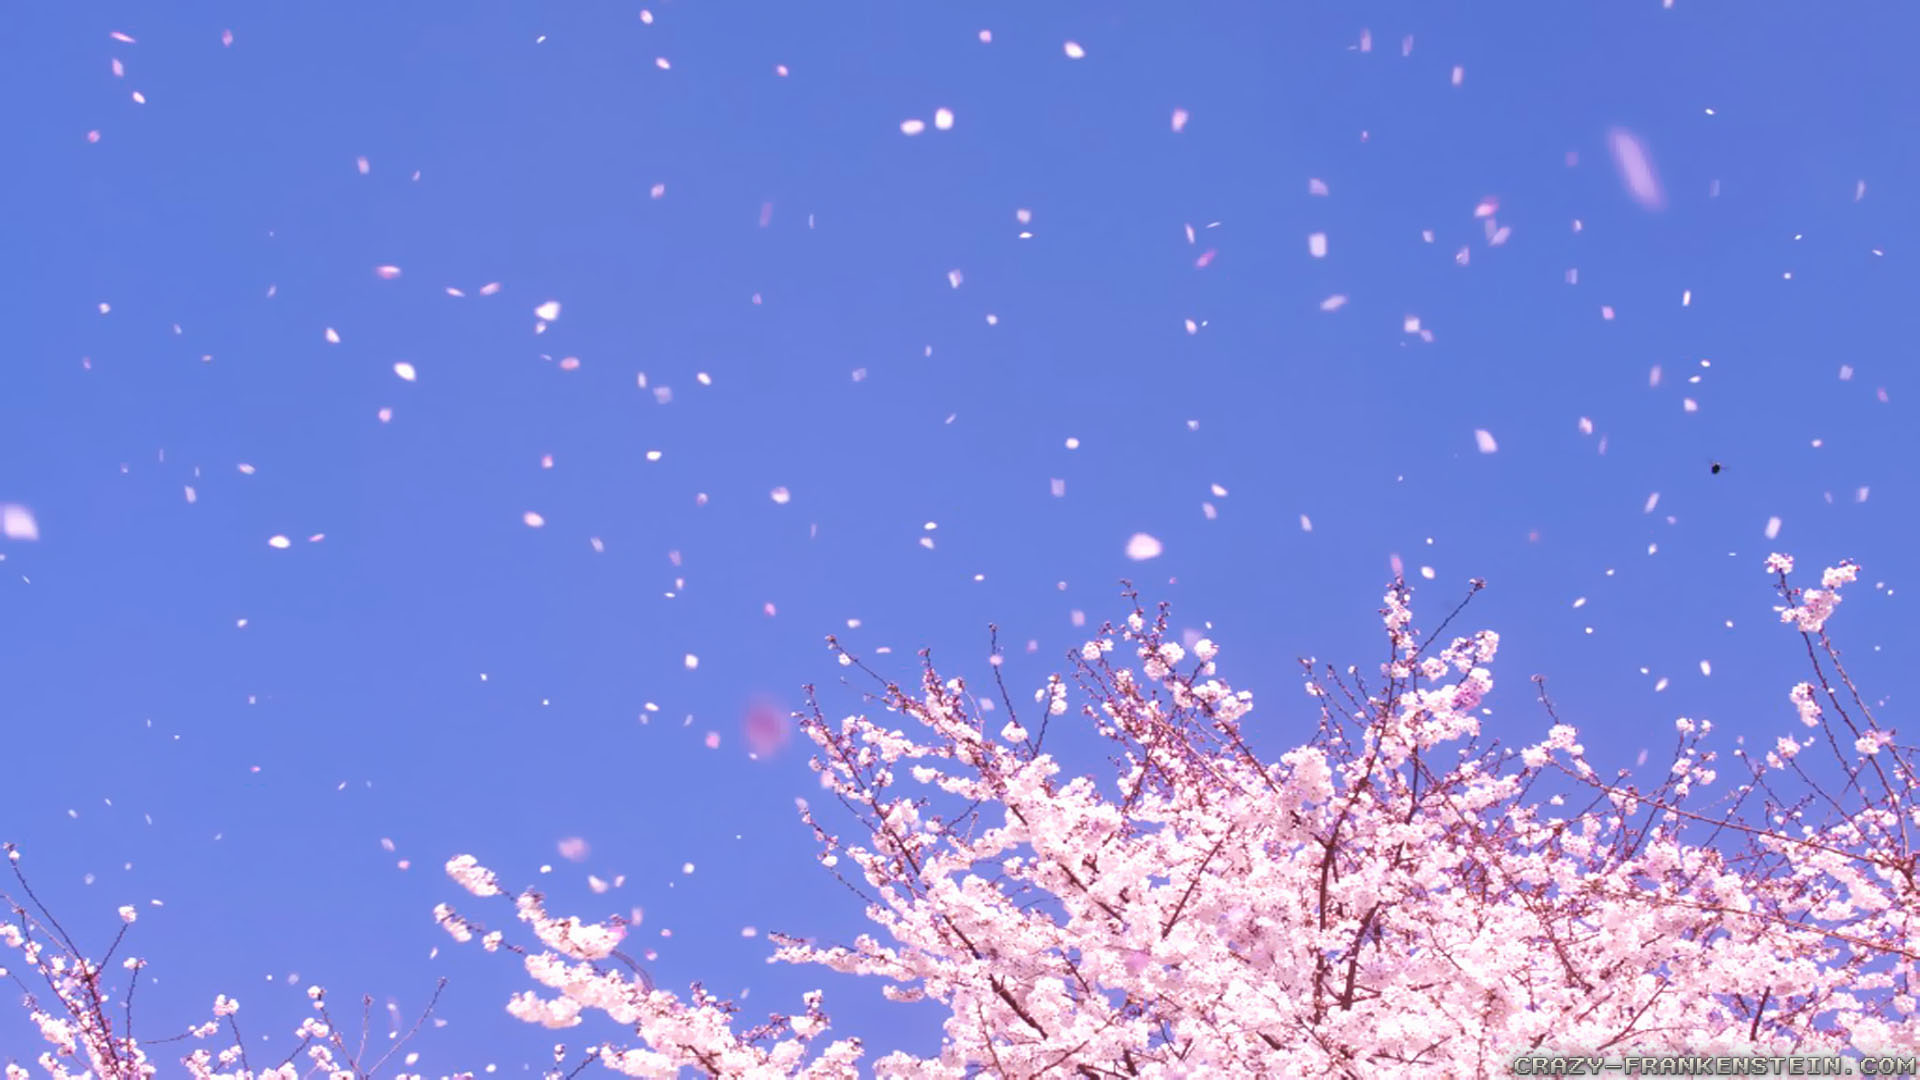 Falling Cherry Blossoms Wallpaper Summer Wind Wallpapers Crazy Frankenstein